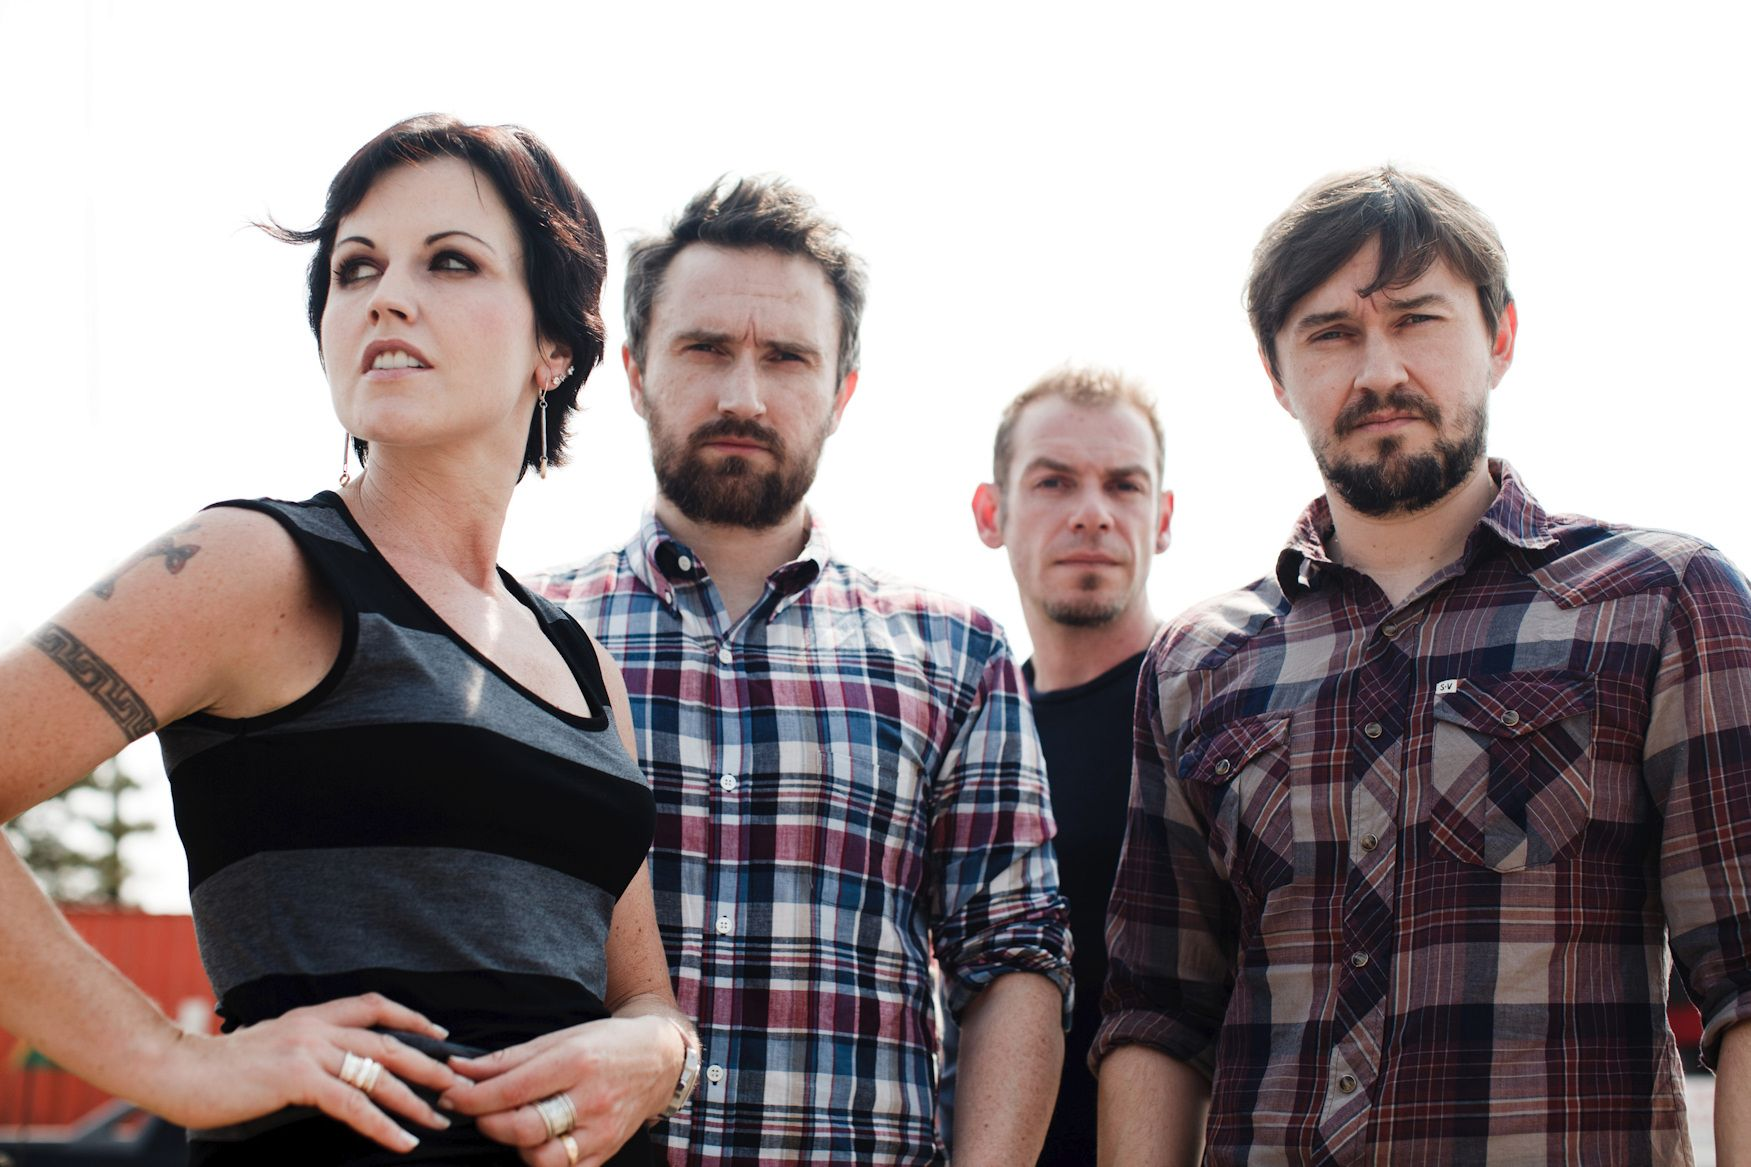 Wake Me When It's Over: The Cranberries comparte un nuevo single del disco póstumo de Dolores O'Riordan